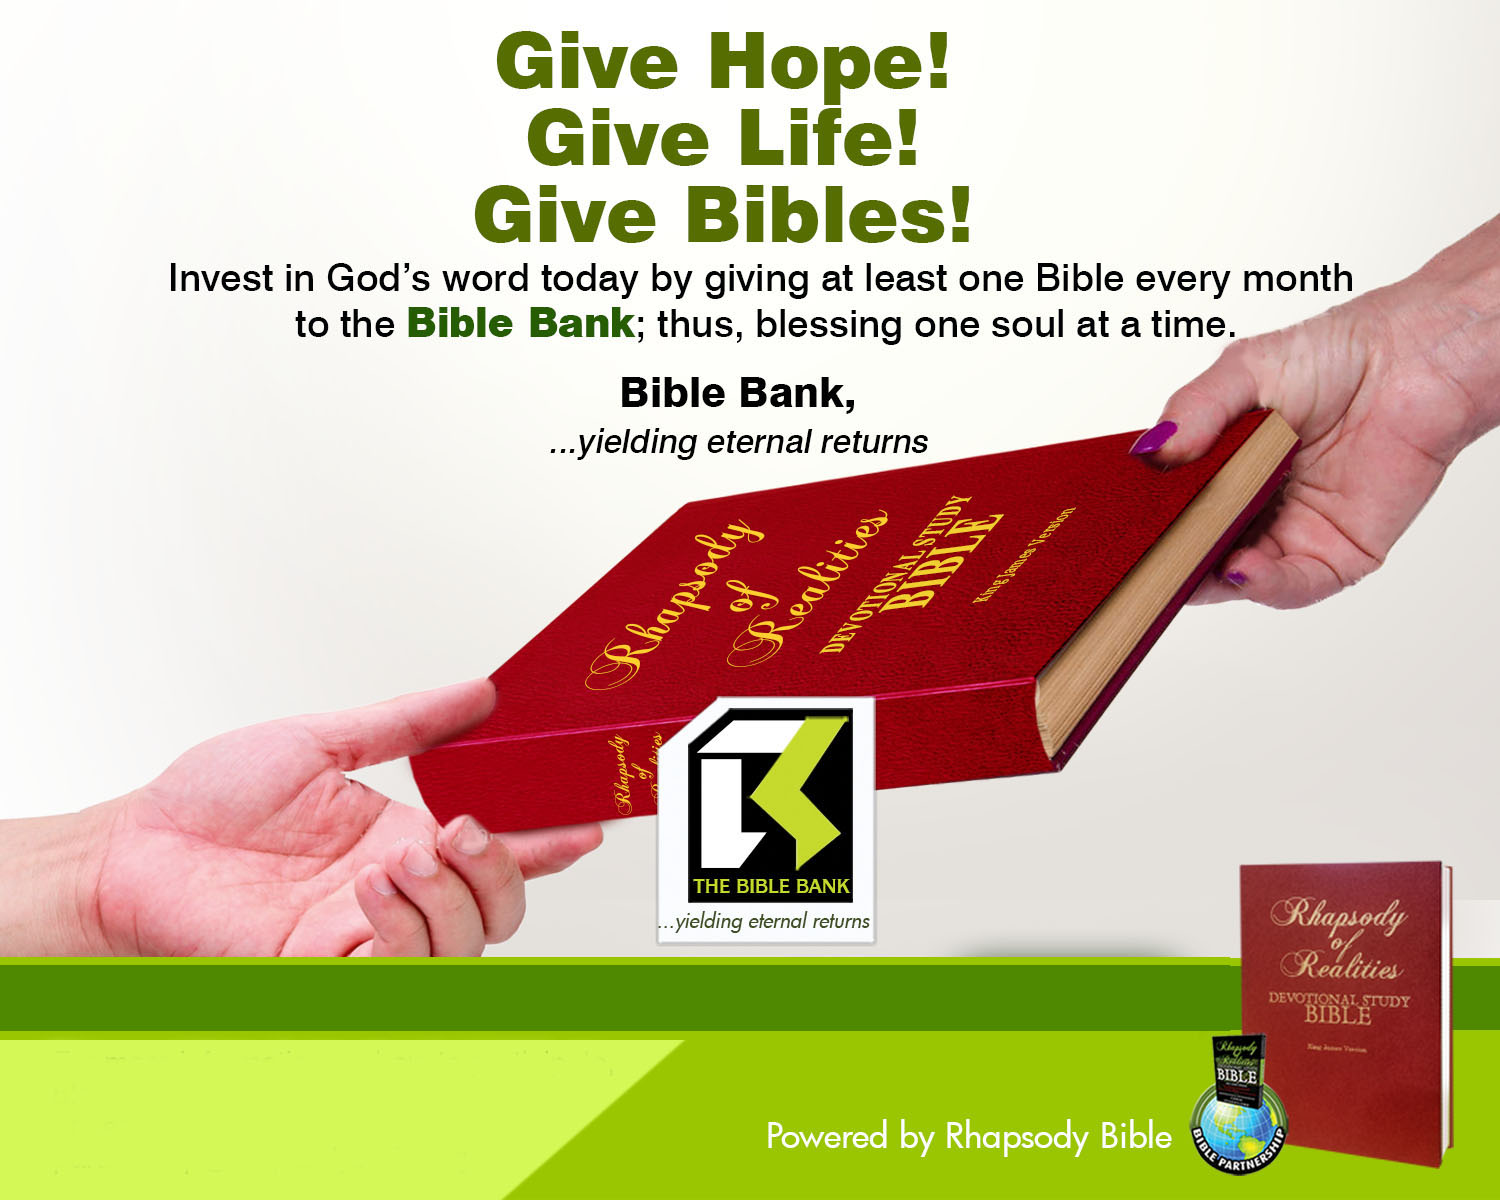 Rhapsody of Realities Bible